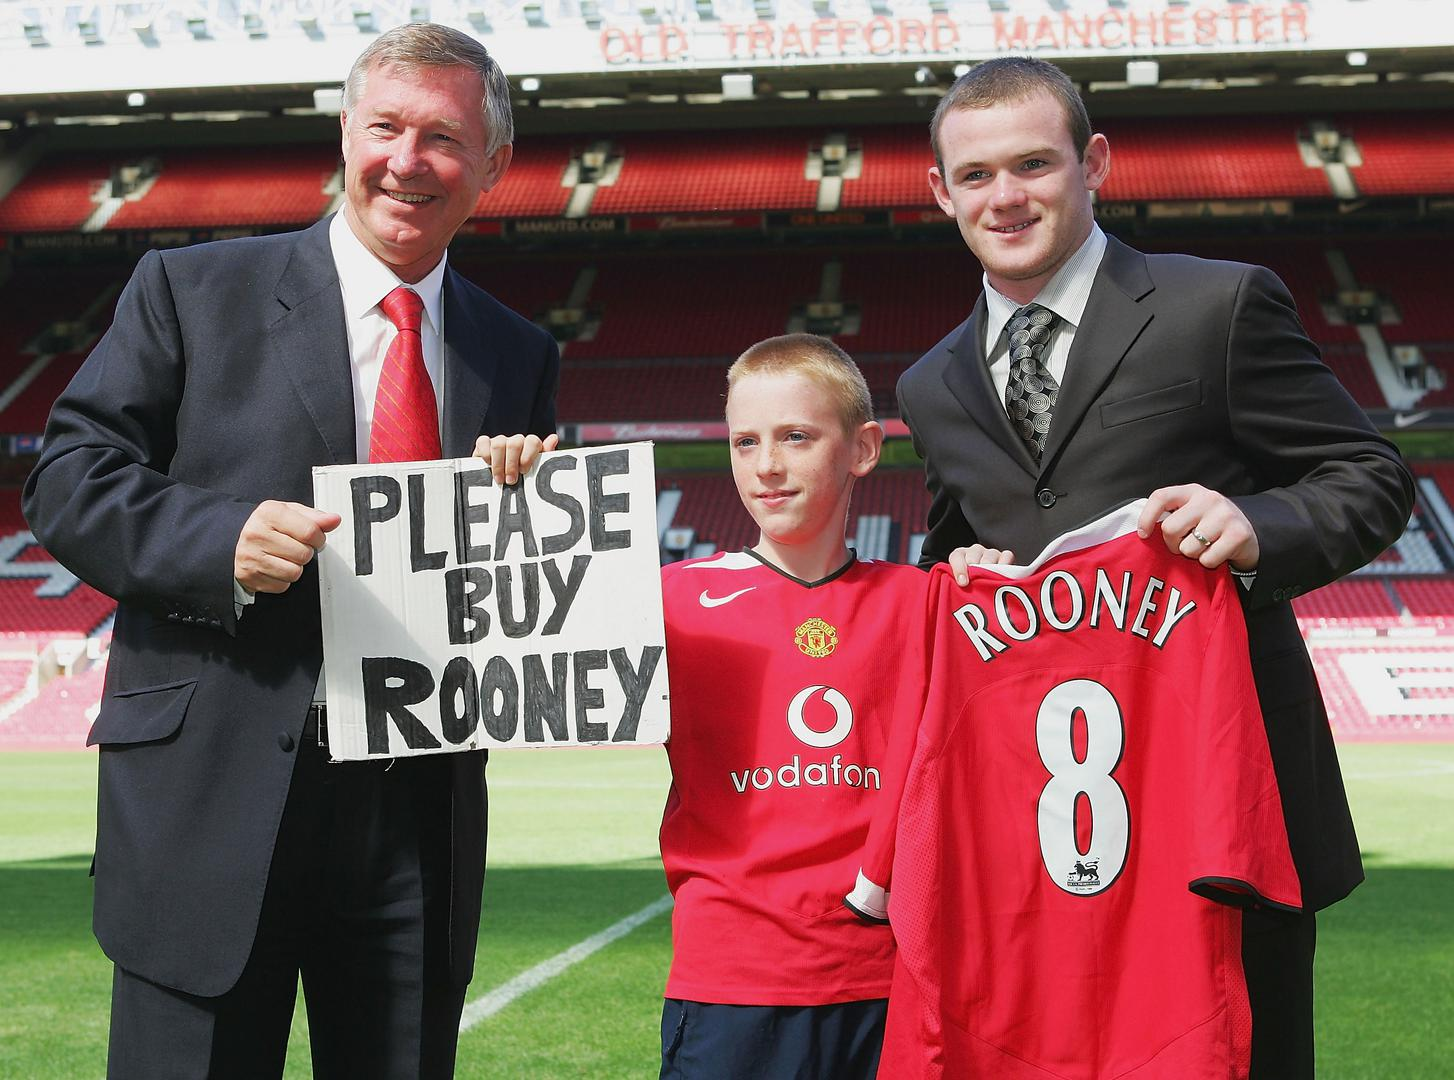 Sir Alex and Wayne Rooney with the young fan who made a sign begging to buy the striker.